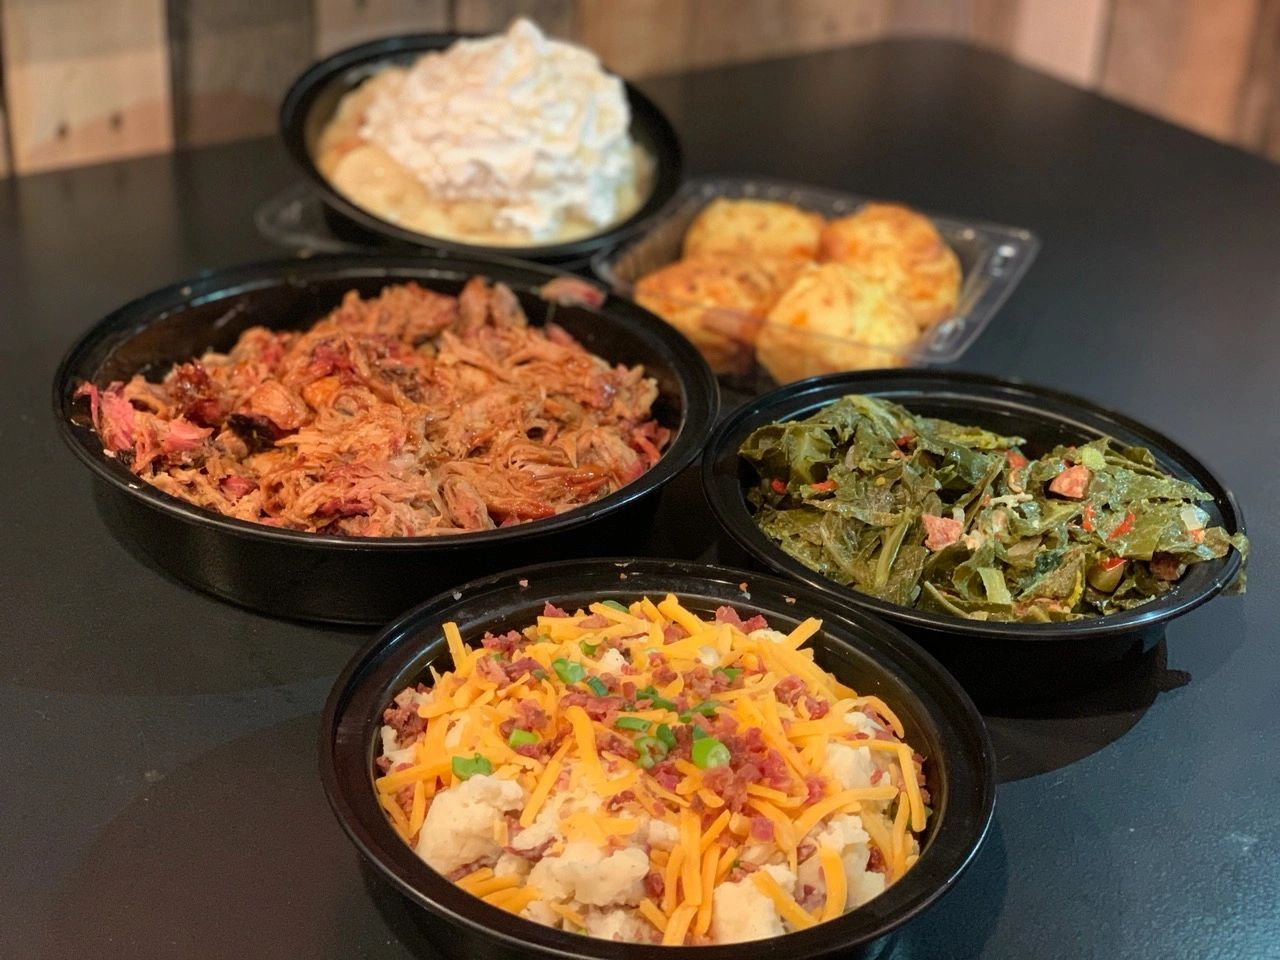 Food Delivery Near Me - Irma's Comfort Kitchen